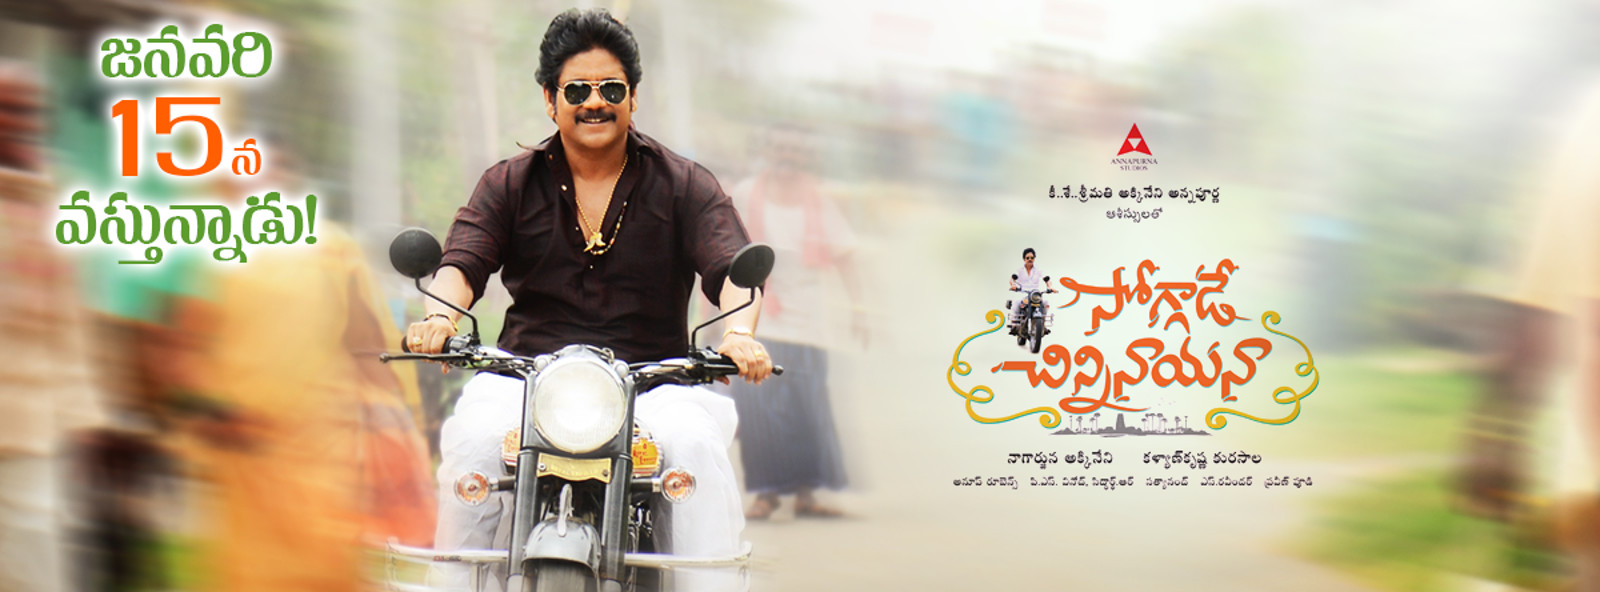 Actor Nagarjuna in Soggade Chinni Nayana Movie Release Wallpapers